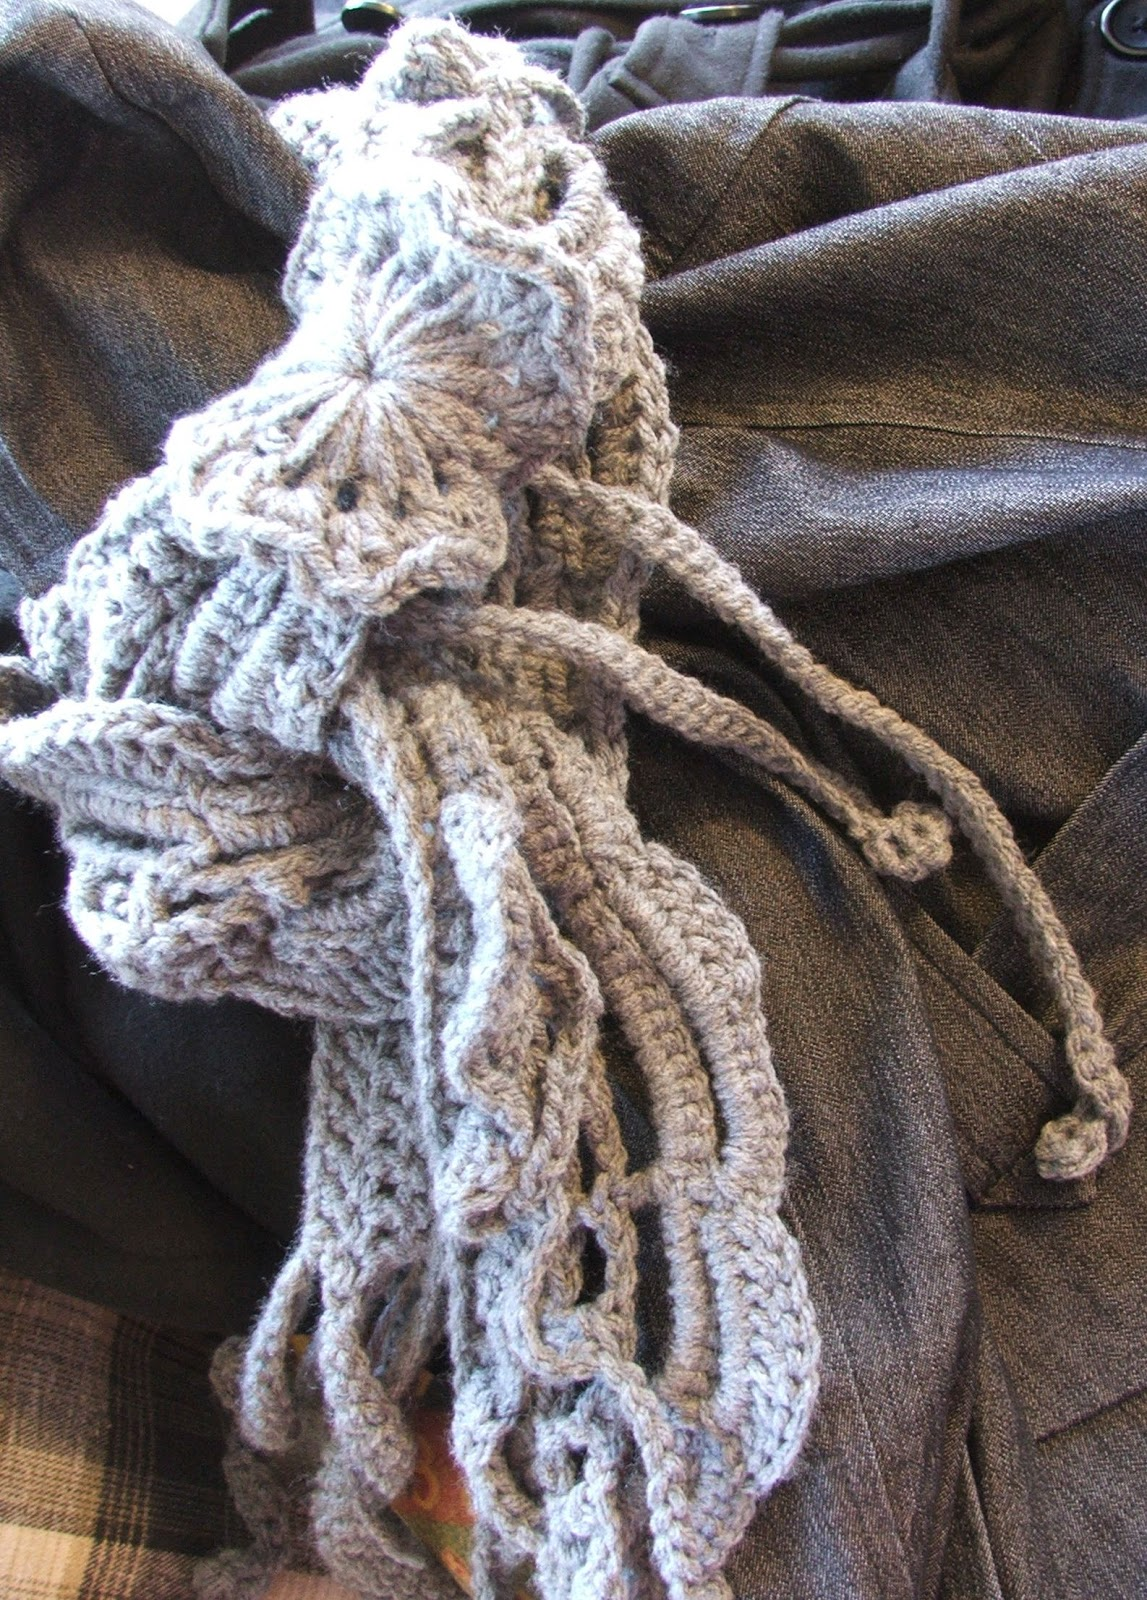 Susan's Hippie Crochet: How to Weave a Scarf, Free Scarf ...